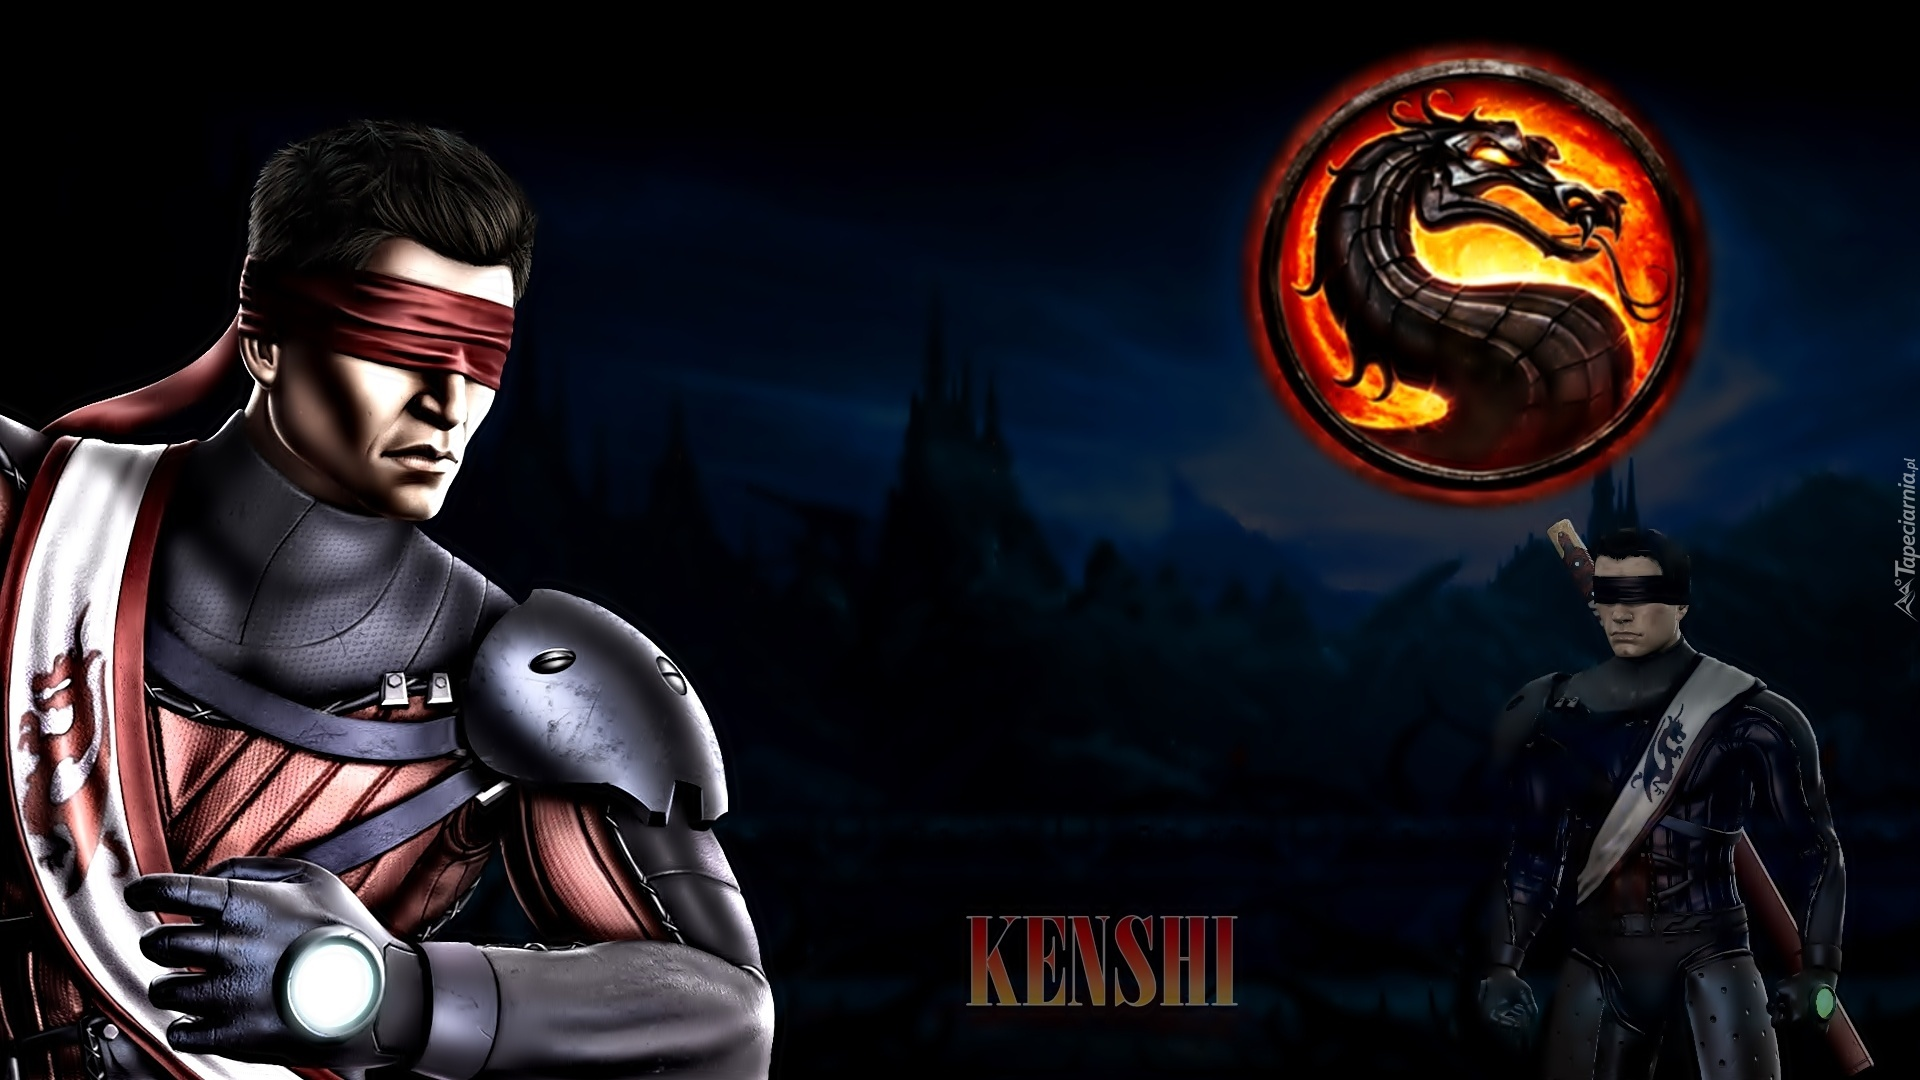 Pictures Of Mortal Kombat 9 Kenshi Rock Cafe